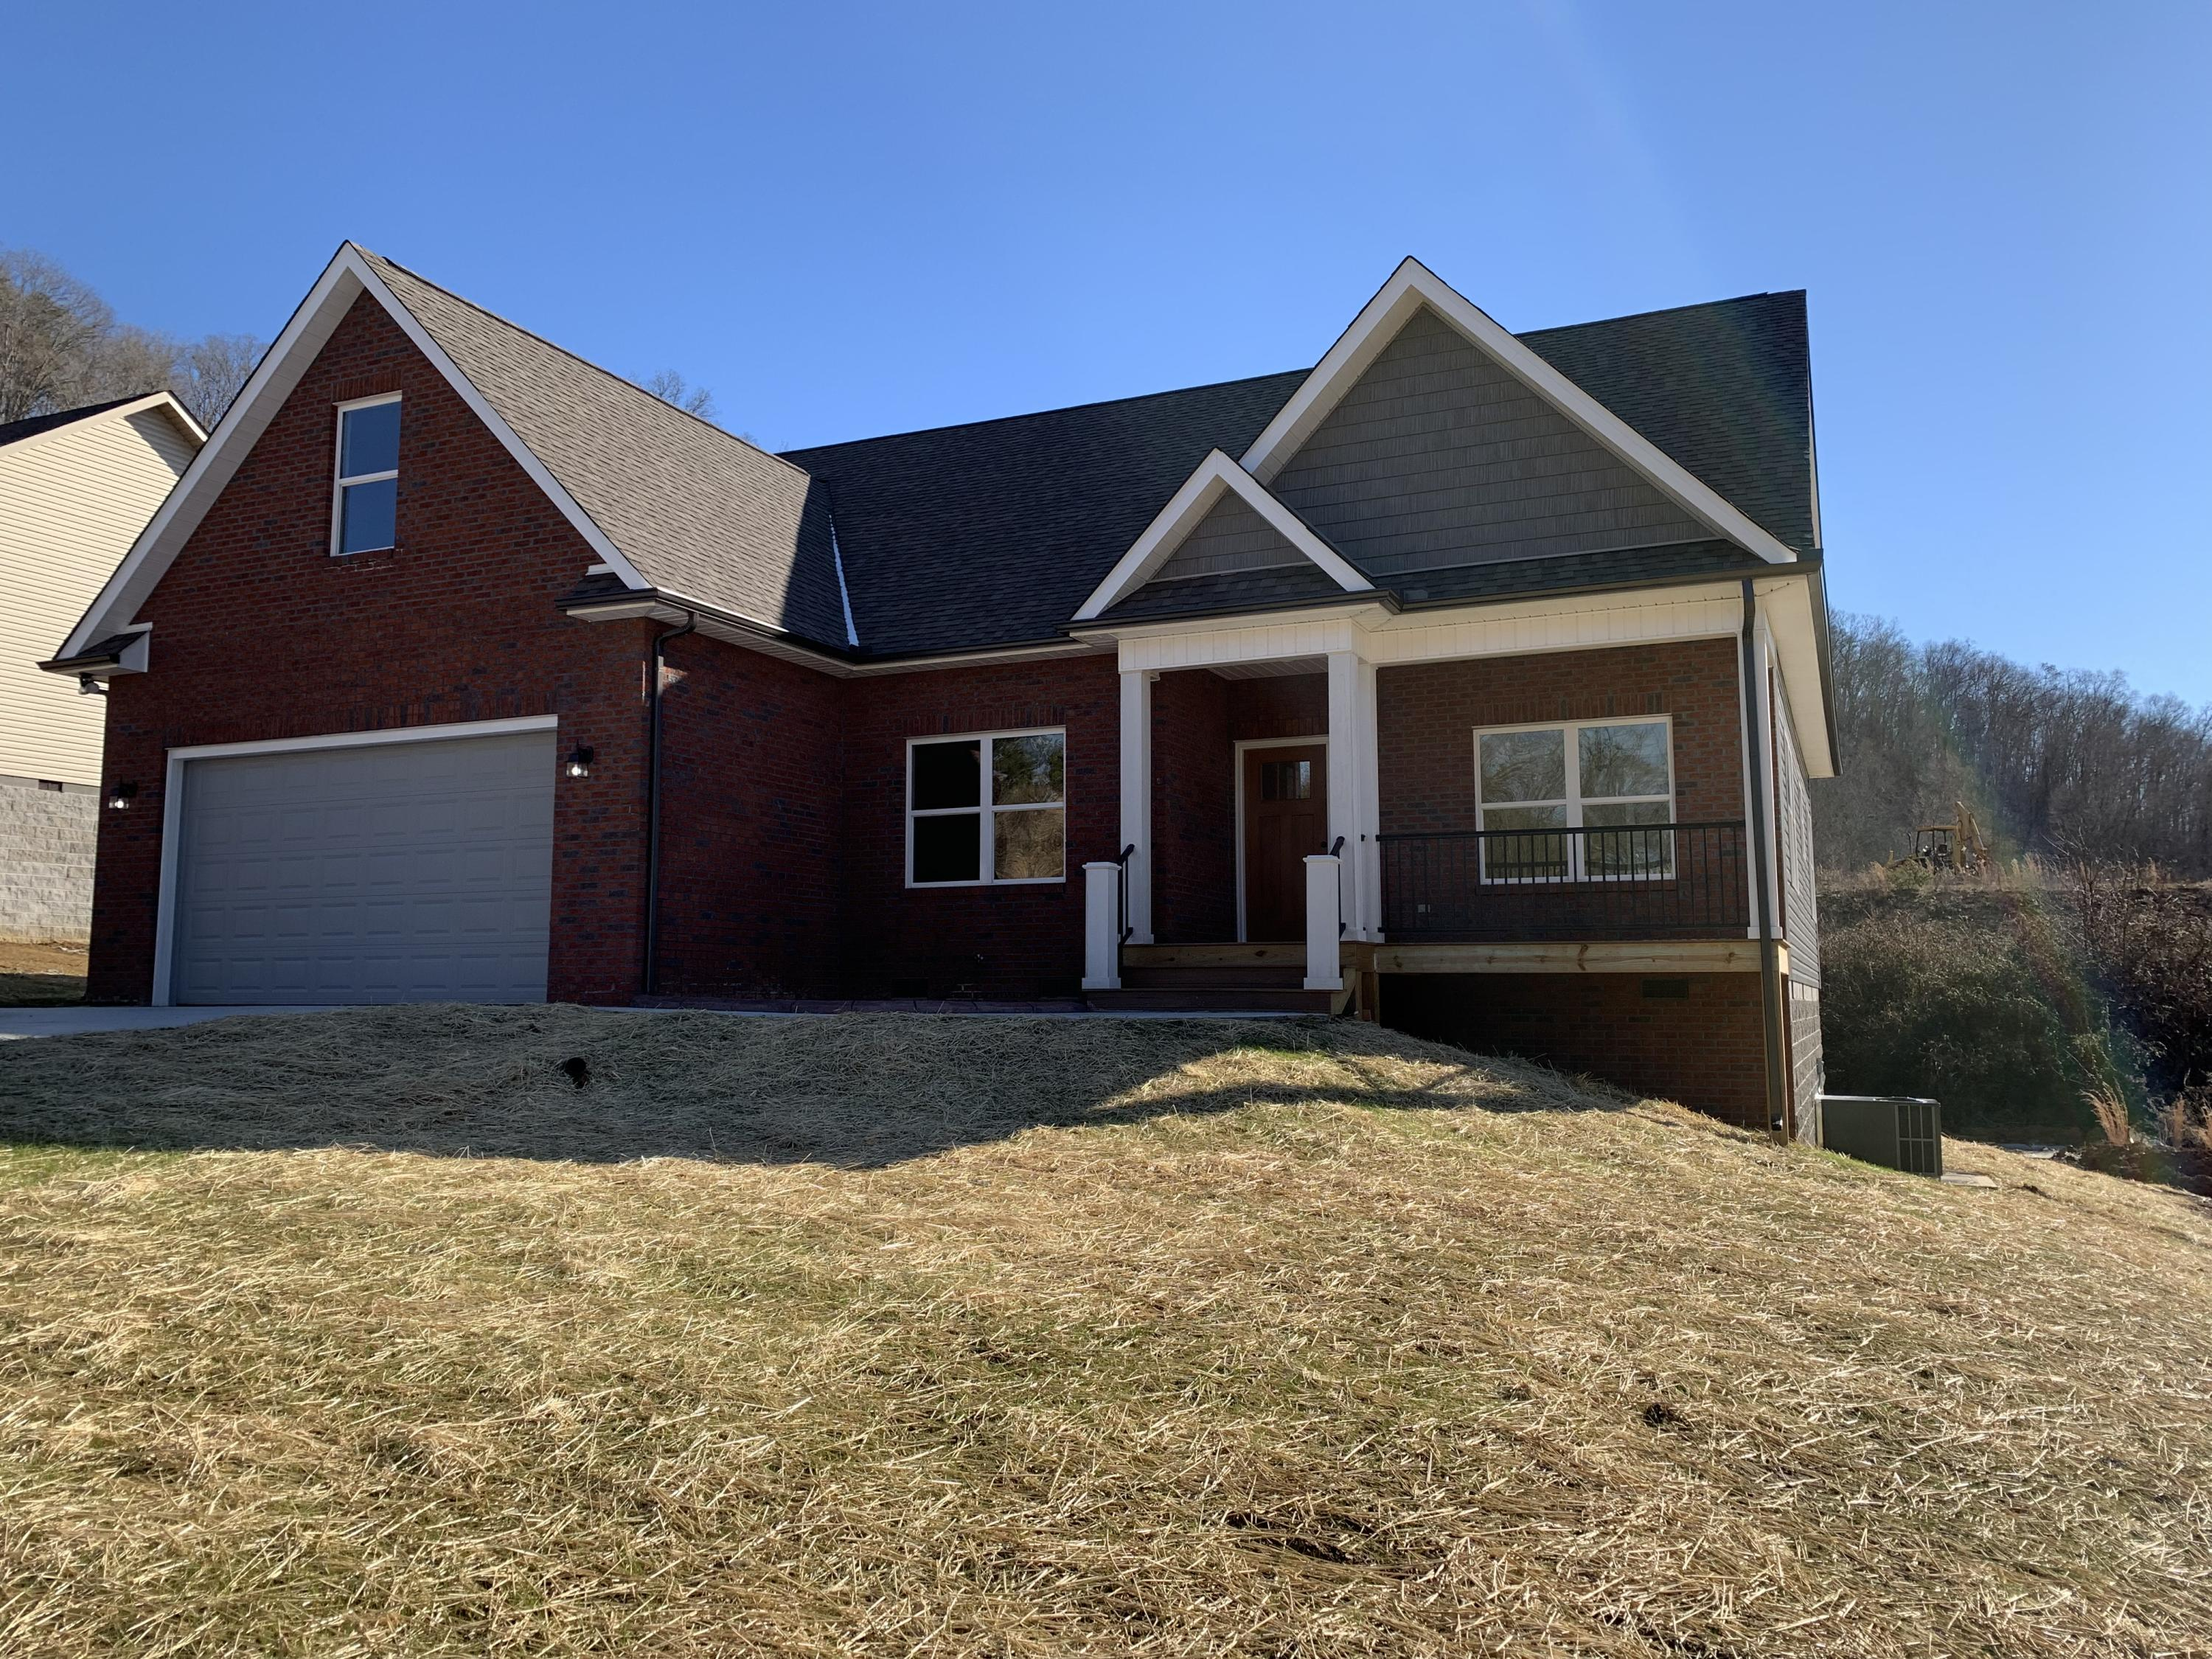 20190419213245868645000000-o Clinton anderson county homes for sale